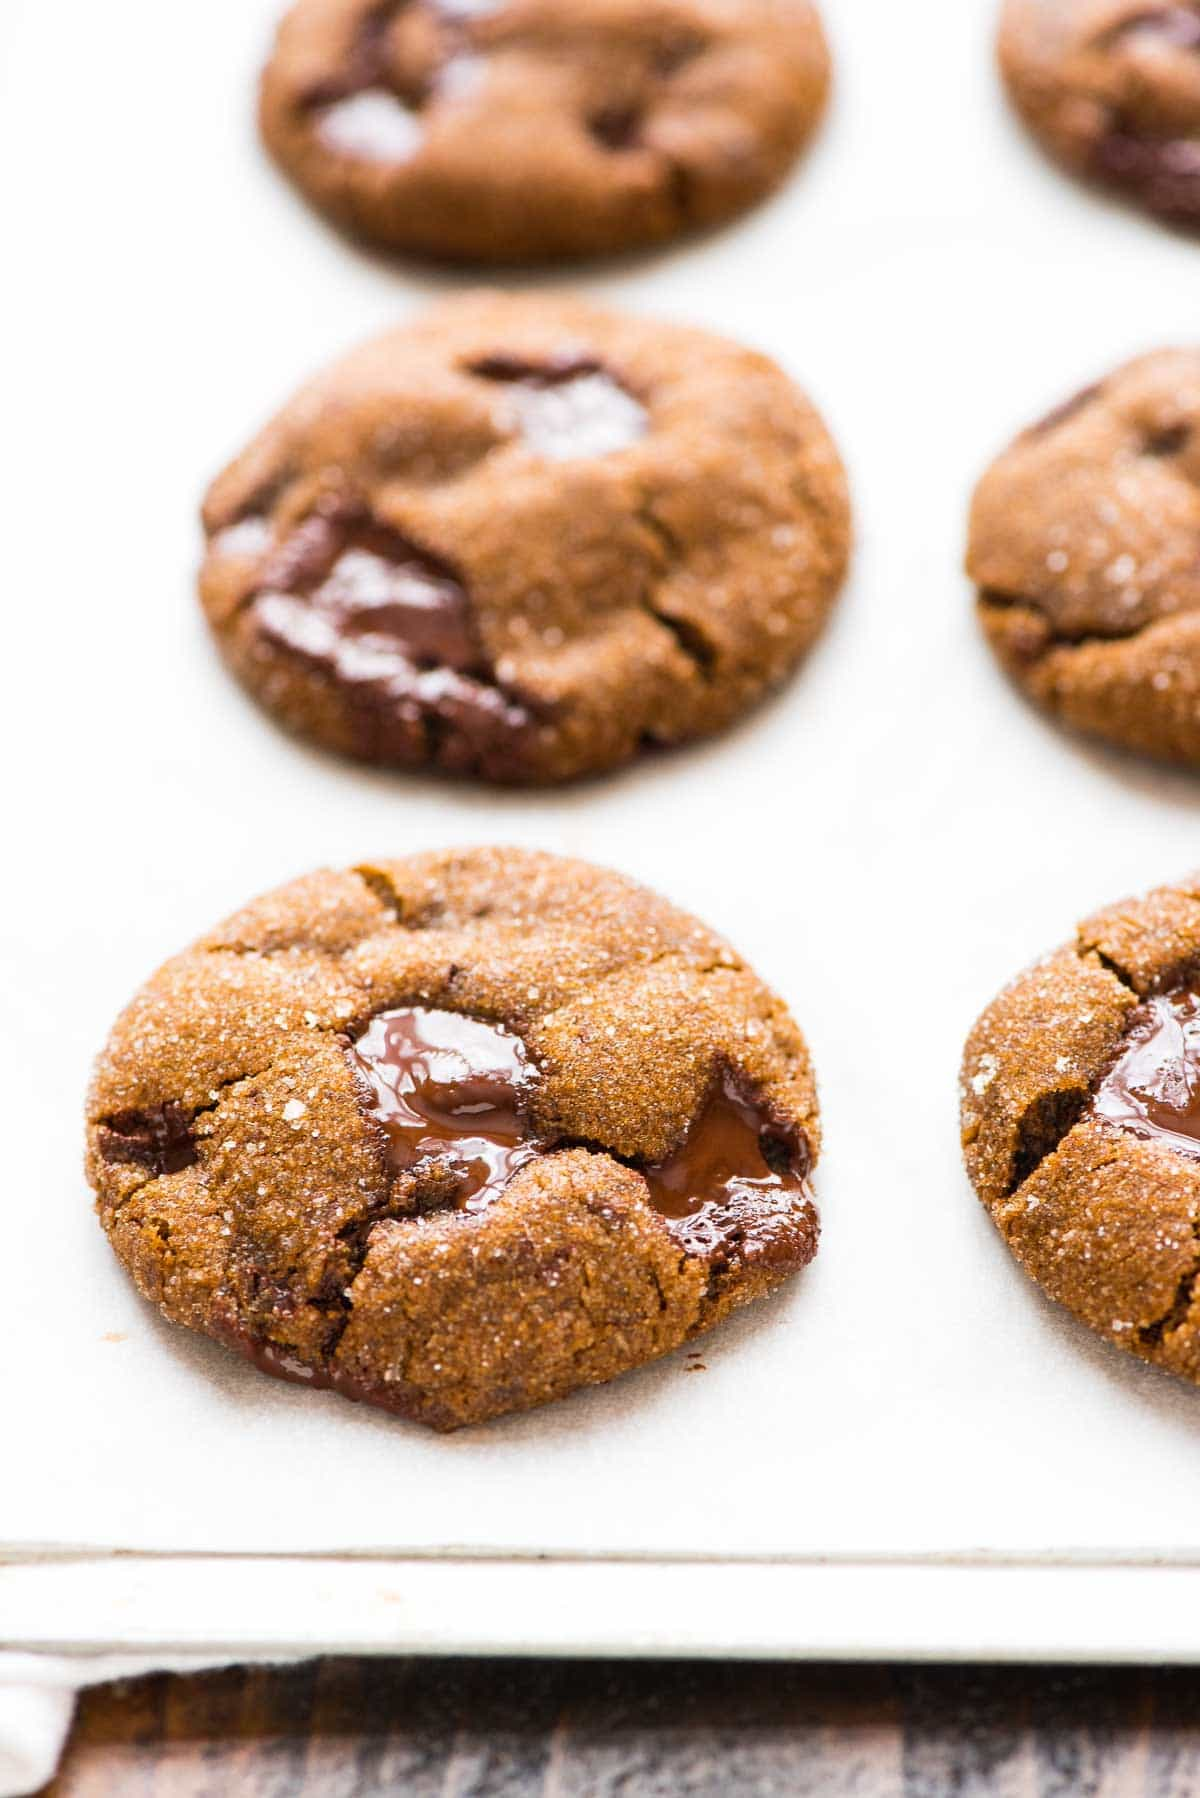 PERFECT Soft and Chewy Ginger Molasses Cookies with Dark Chocolate Chunks and fresh ginger. This is the BEST soft gingersnap recipe. Perfect for Christmas or anytime you want a special treat! Recipe at wellplated.com | @wellplated